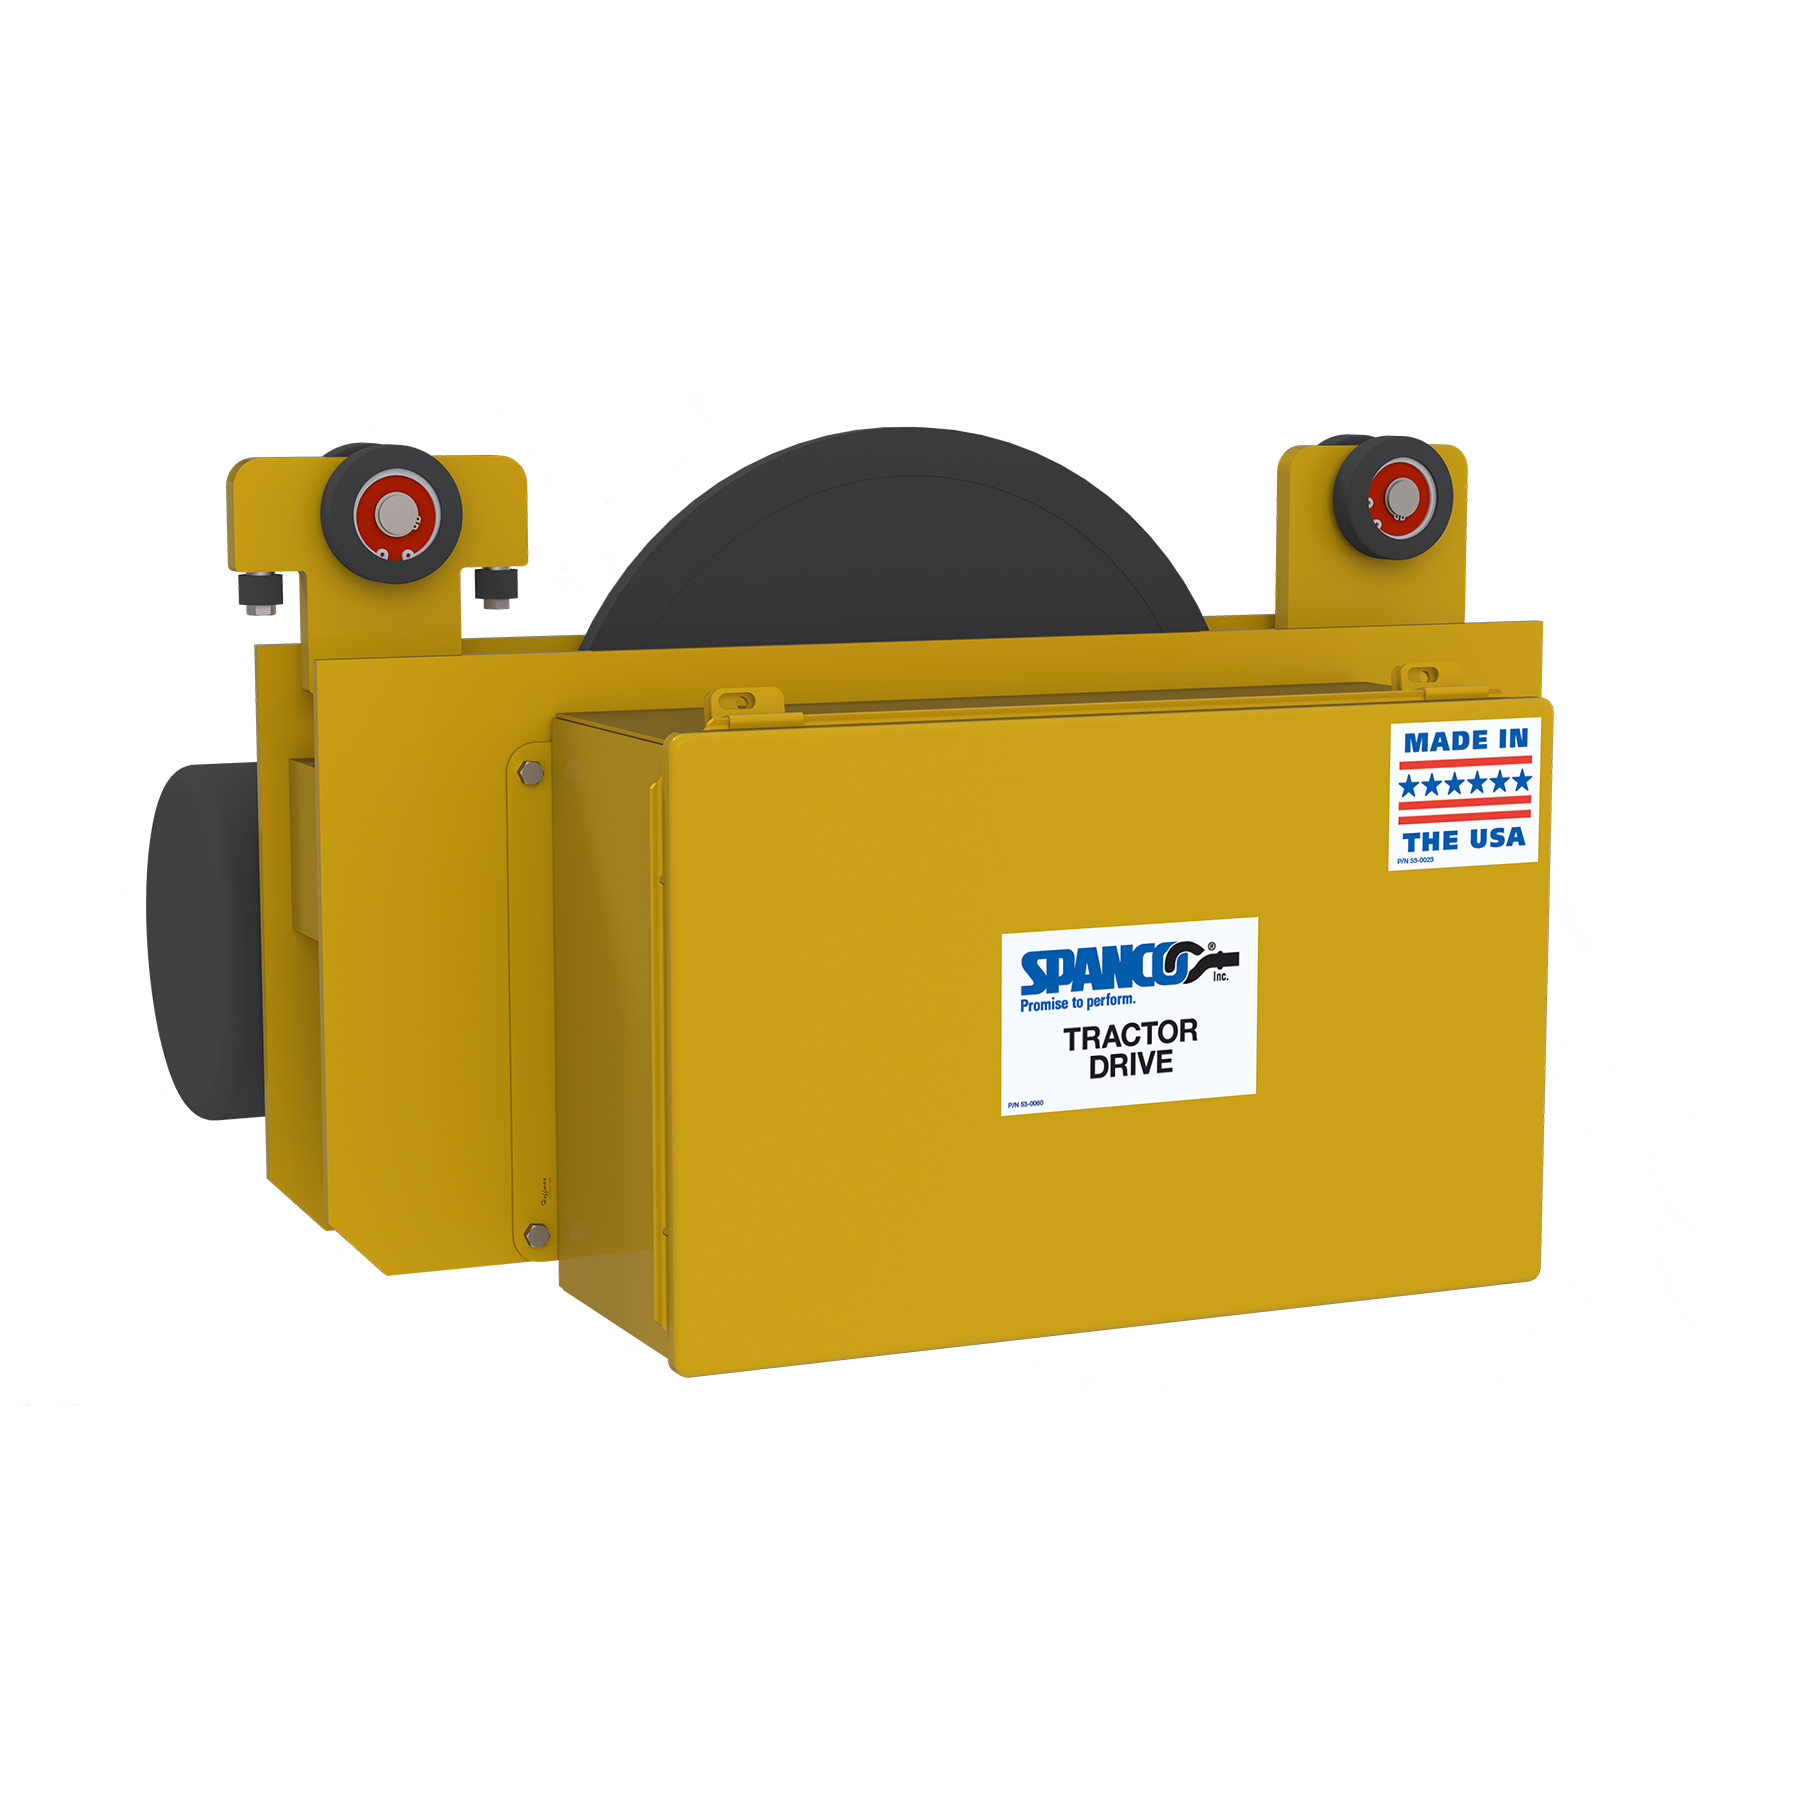 Enclosed Track Tractor Drive